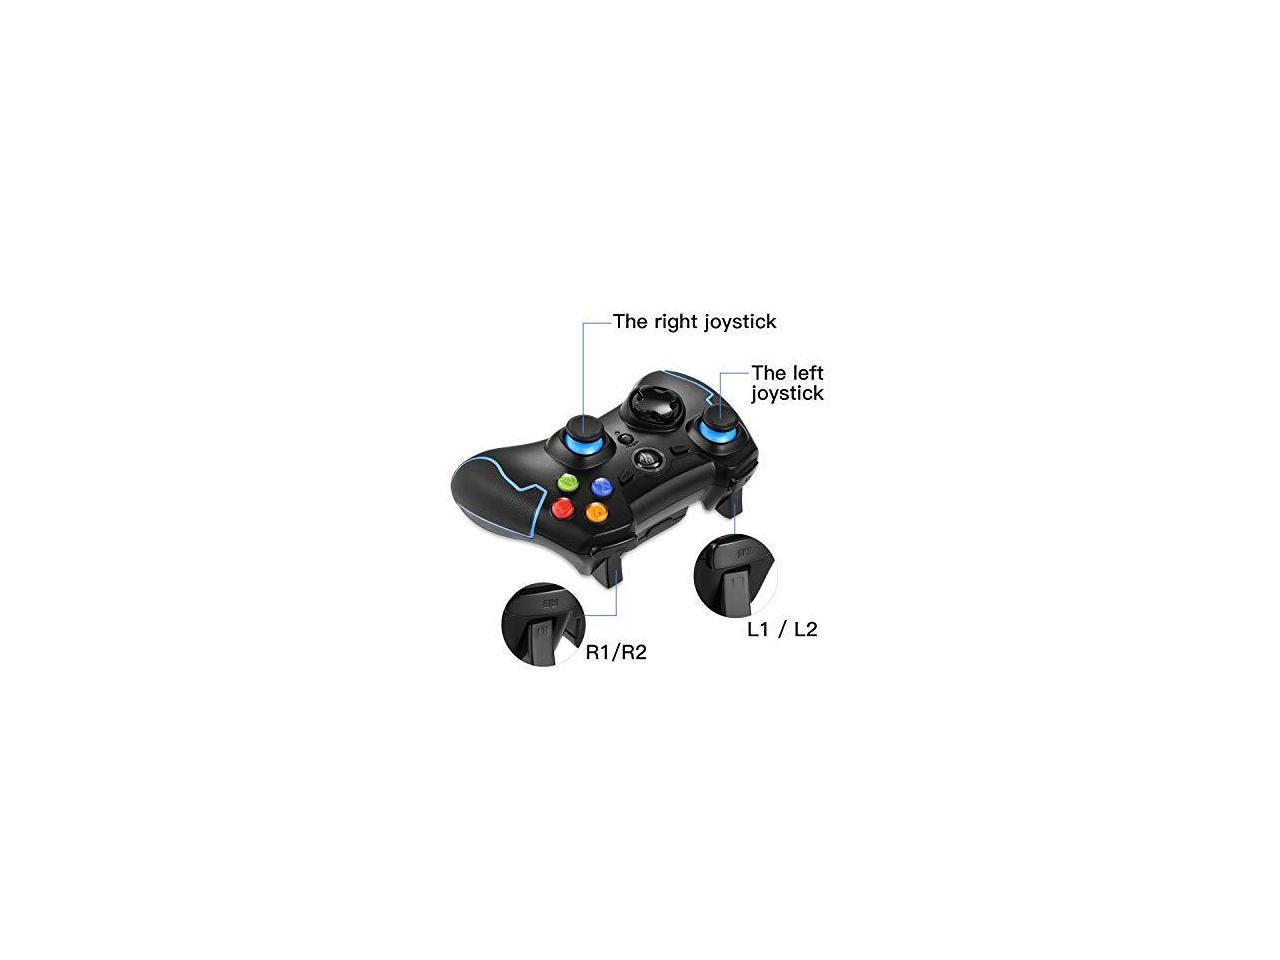 24g Wireless Controller For Ps3 Pc Gamepads With Vibration